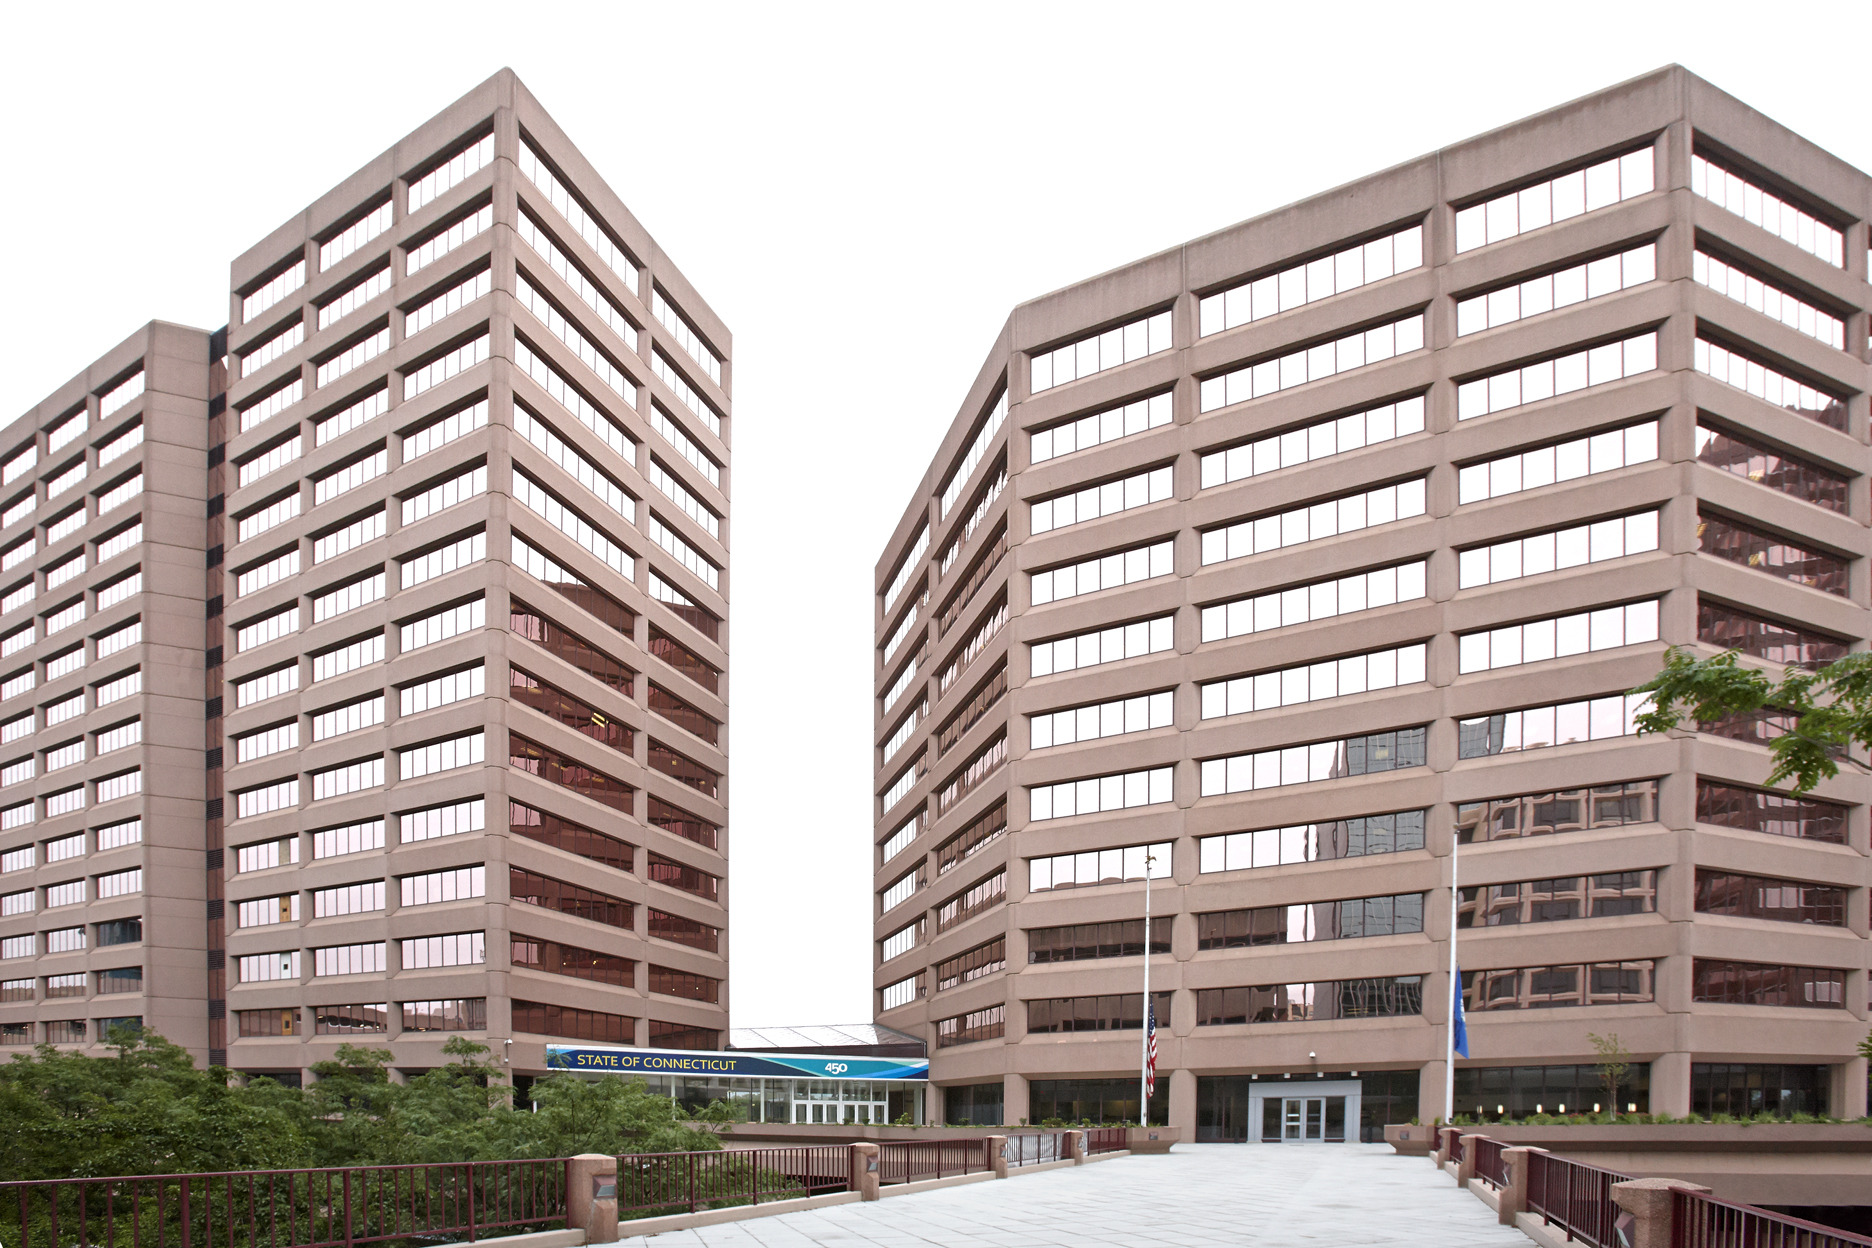 State of Connecticut Department of Administrative Services Office Building